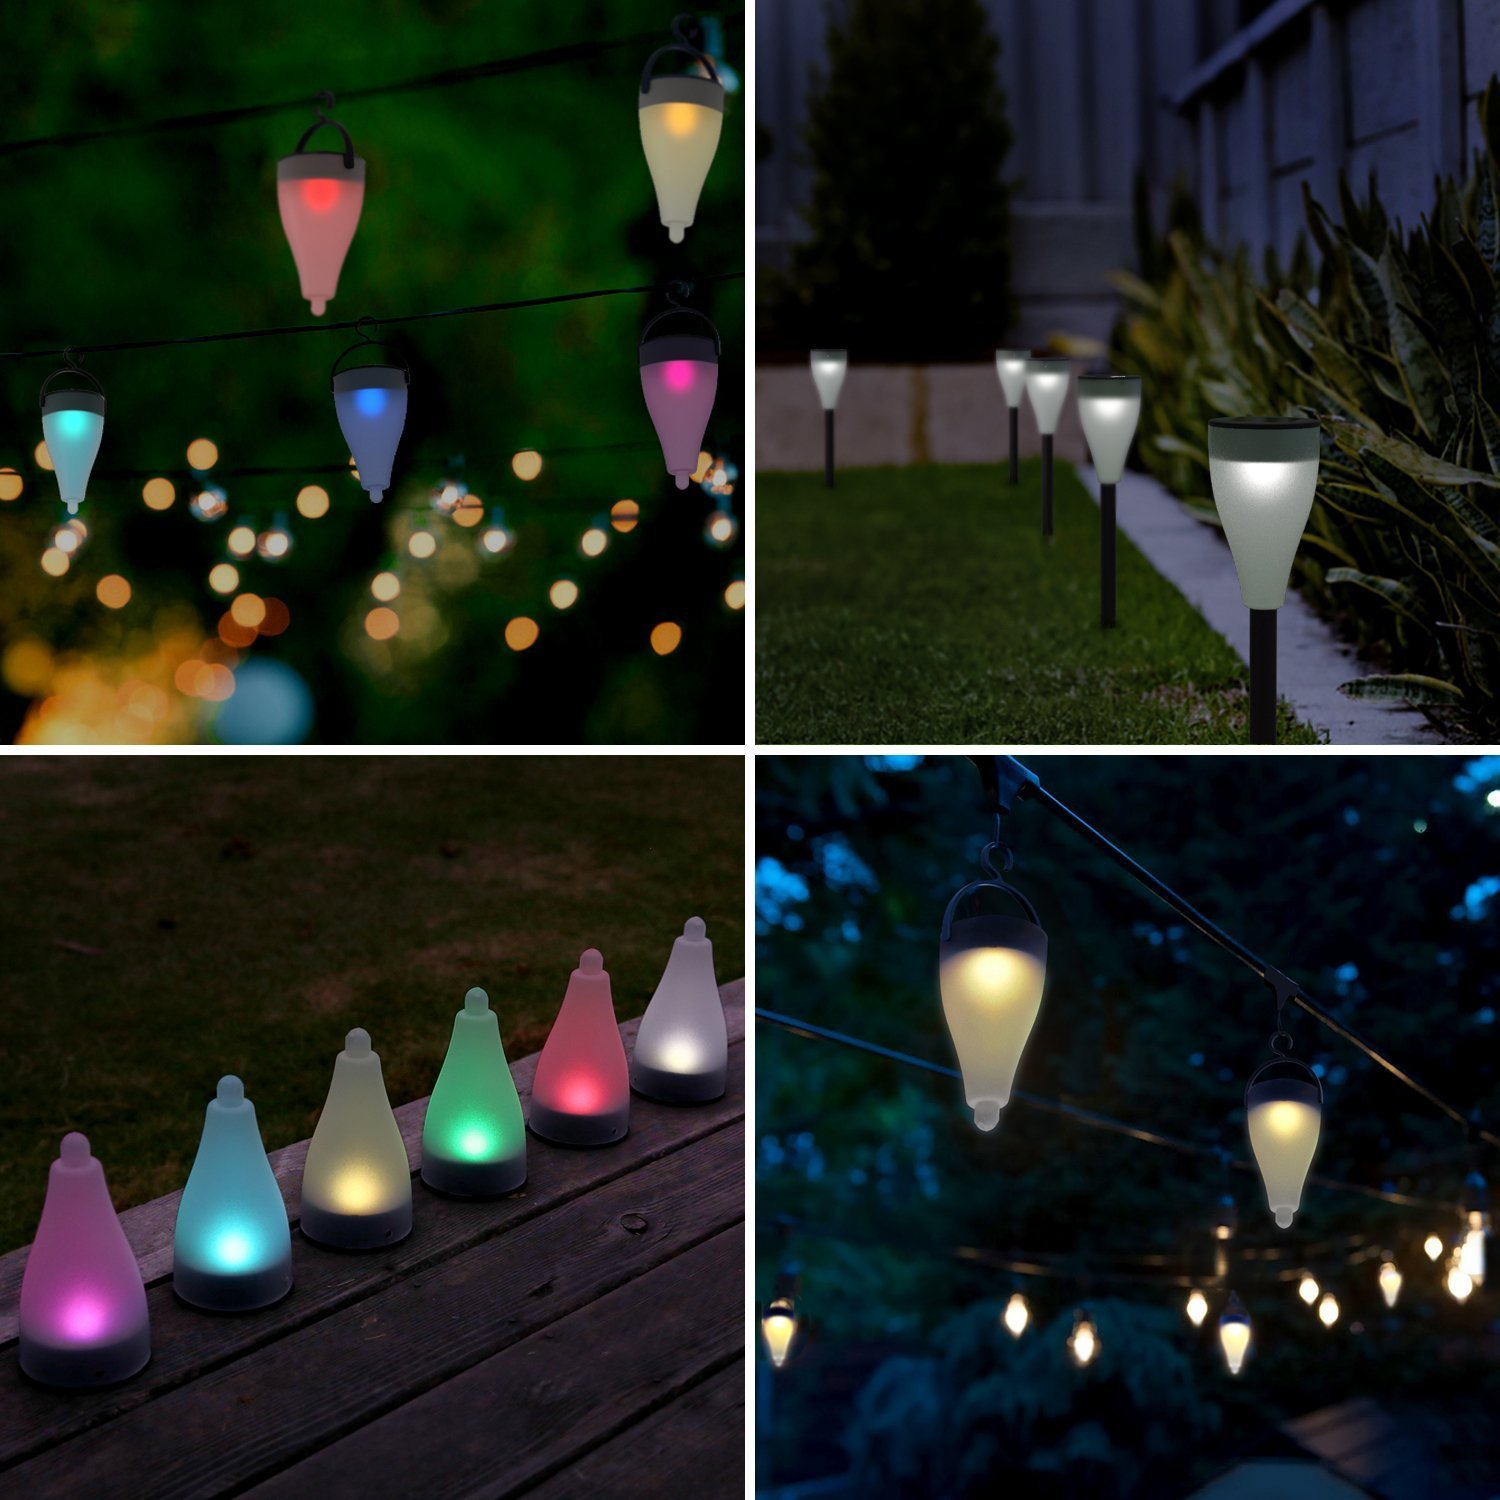 Amazon.com : Aglaia Color Changing Solar Lights Outdoor, Pack of 6 ...